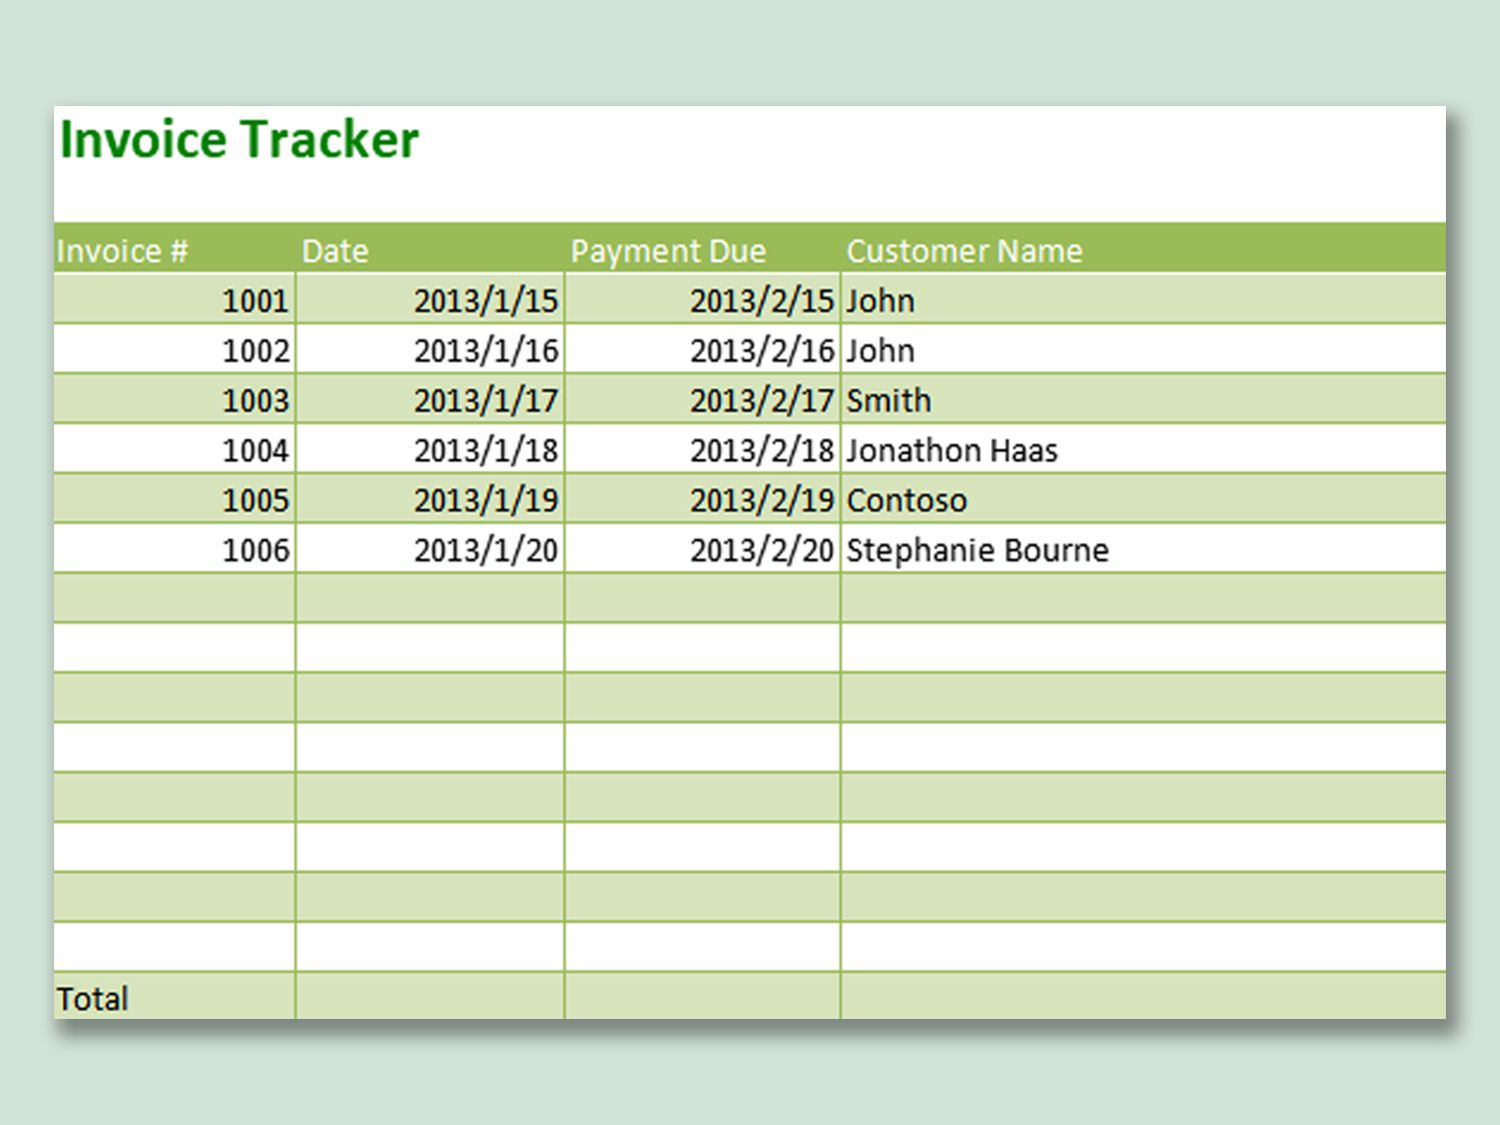 003 Singular Excel Invoice Tracking Template Download High Resolution Full